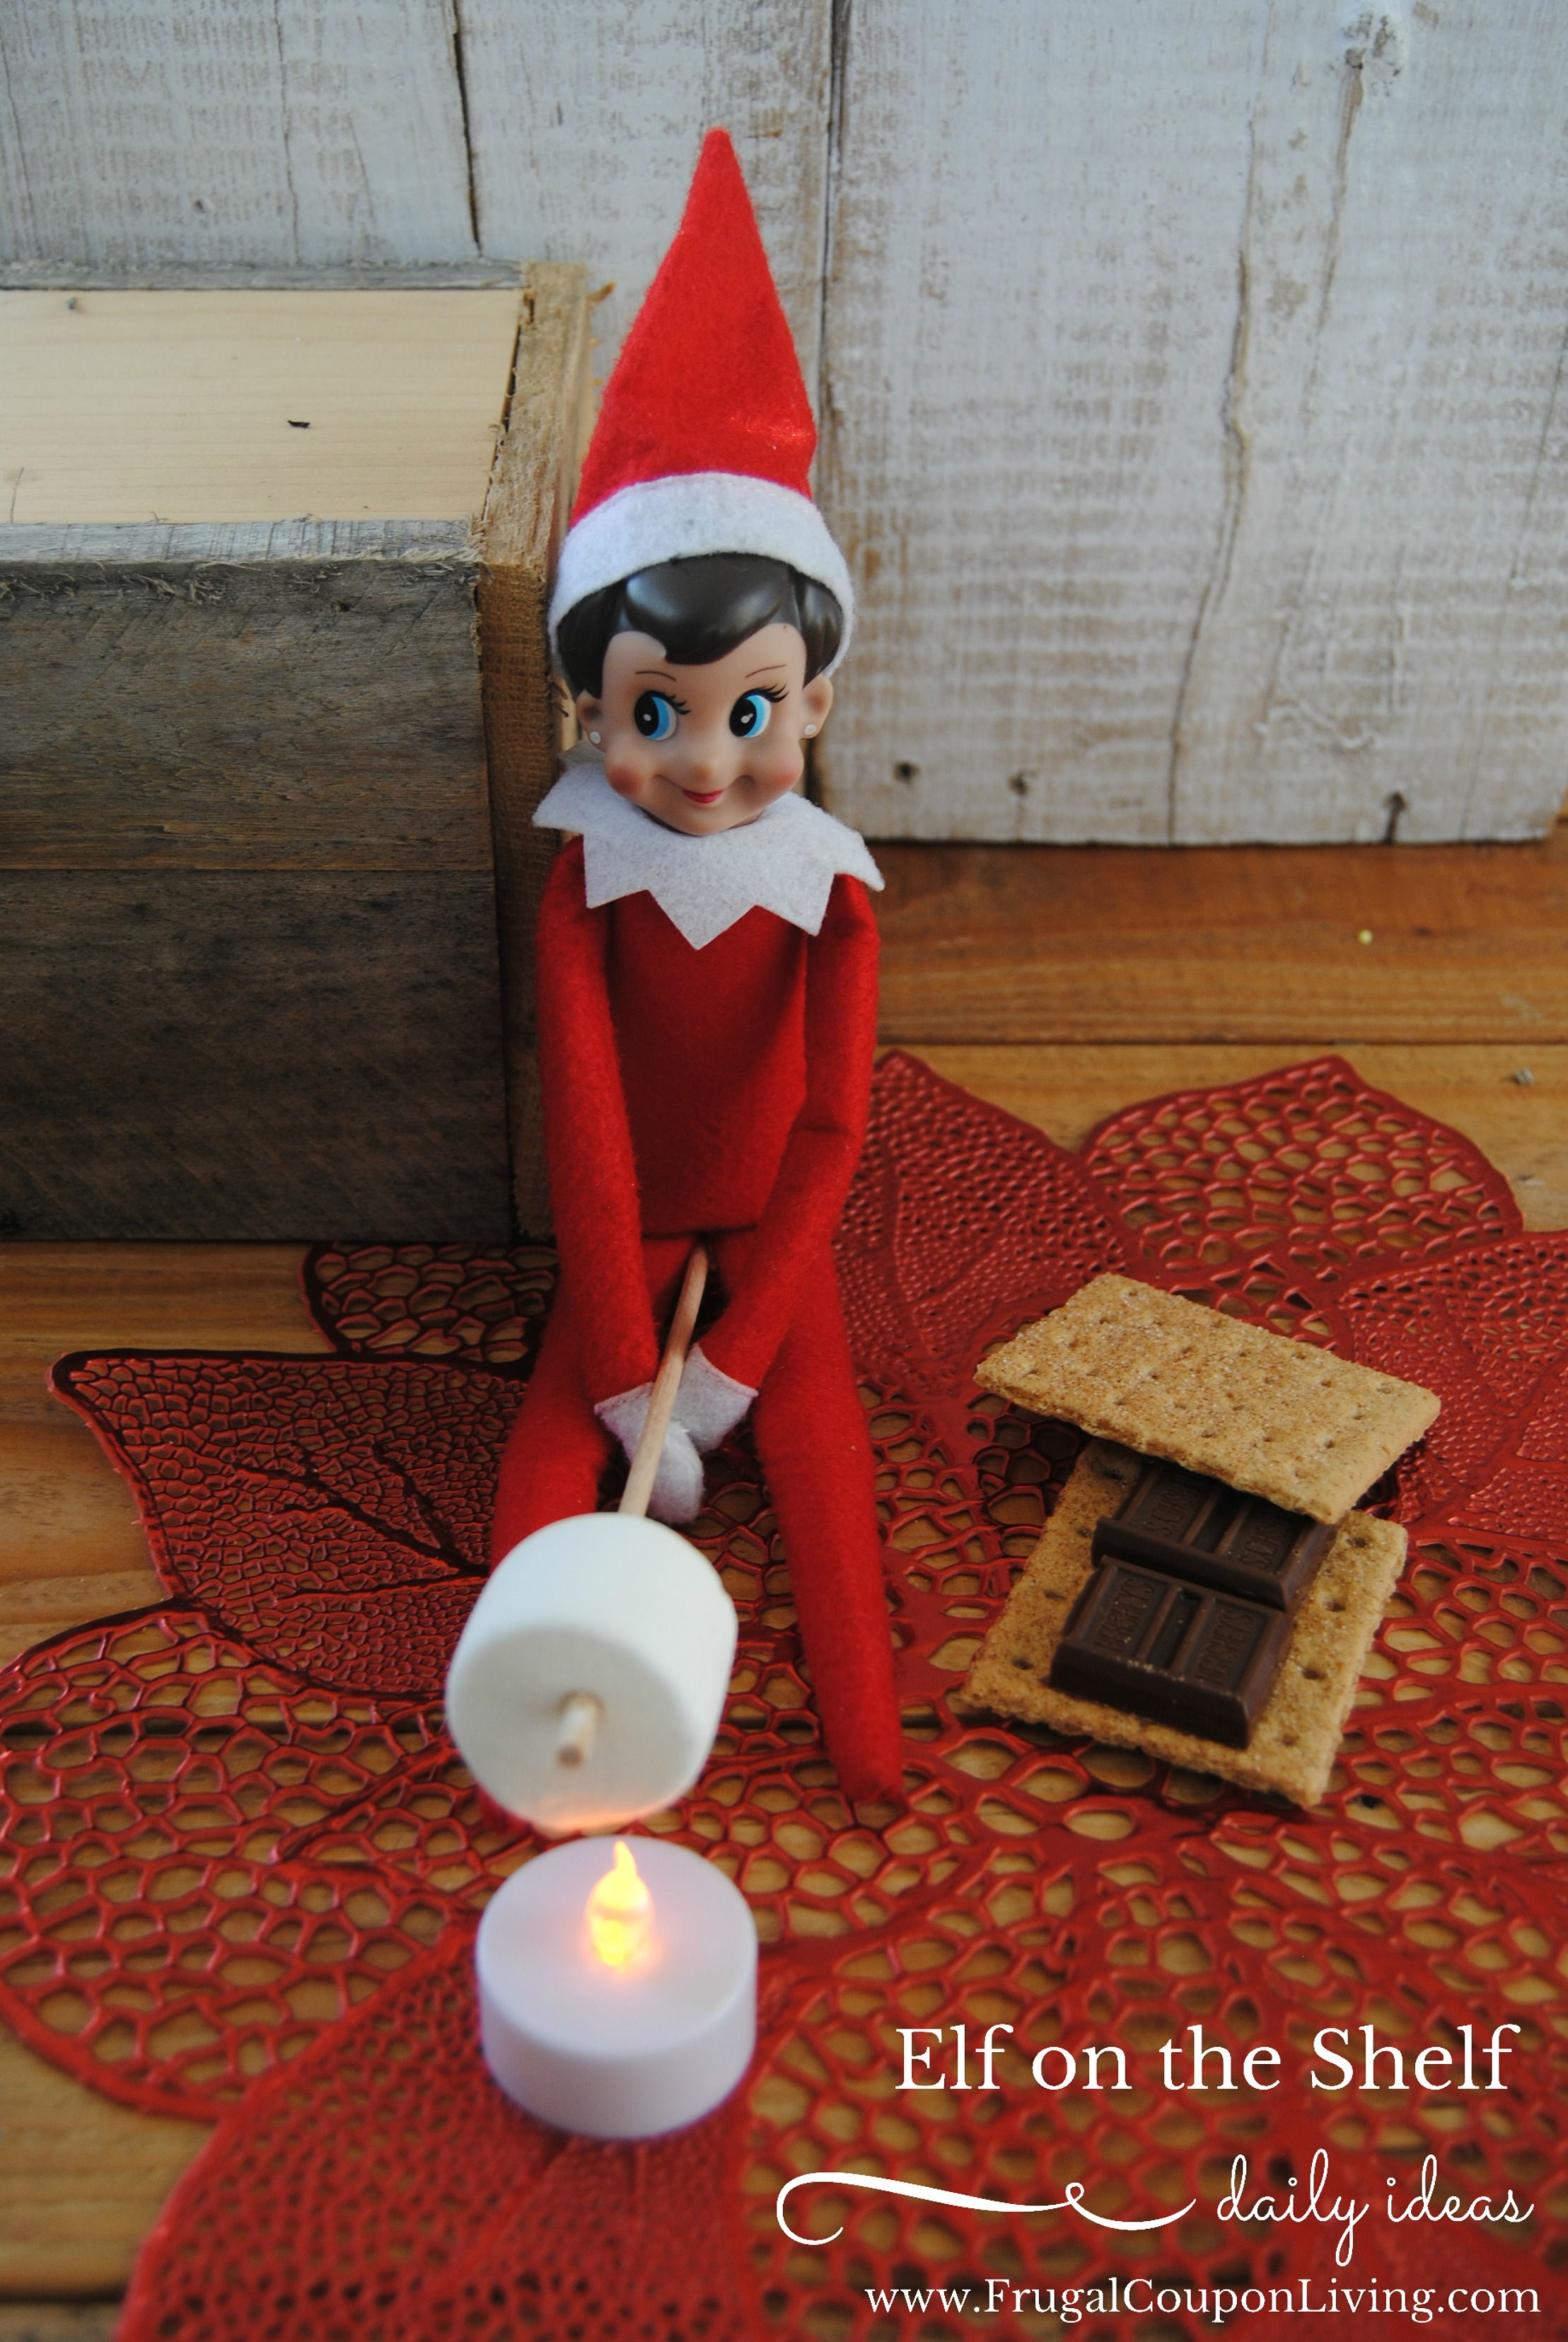 Pin By The Jonathan Alonso On Elf Shelf Ideas Awesome Elf On The